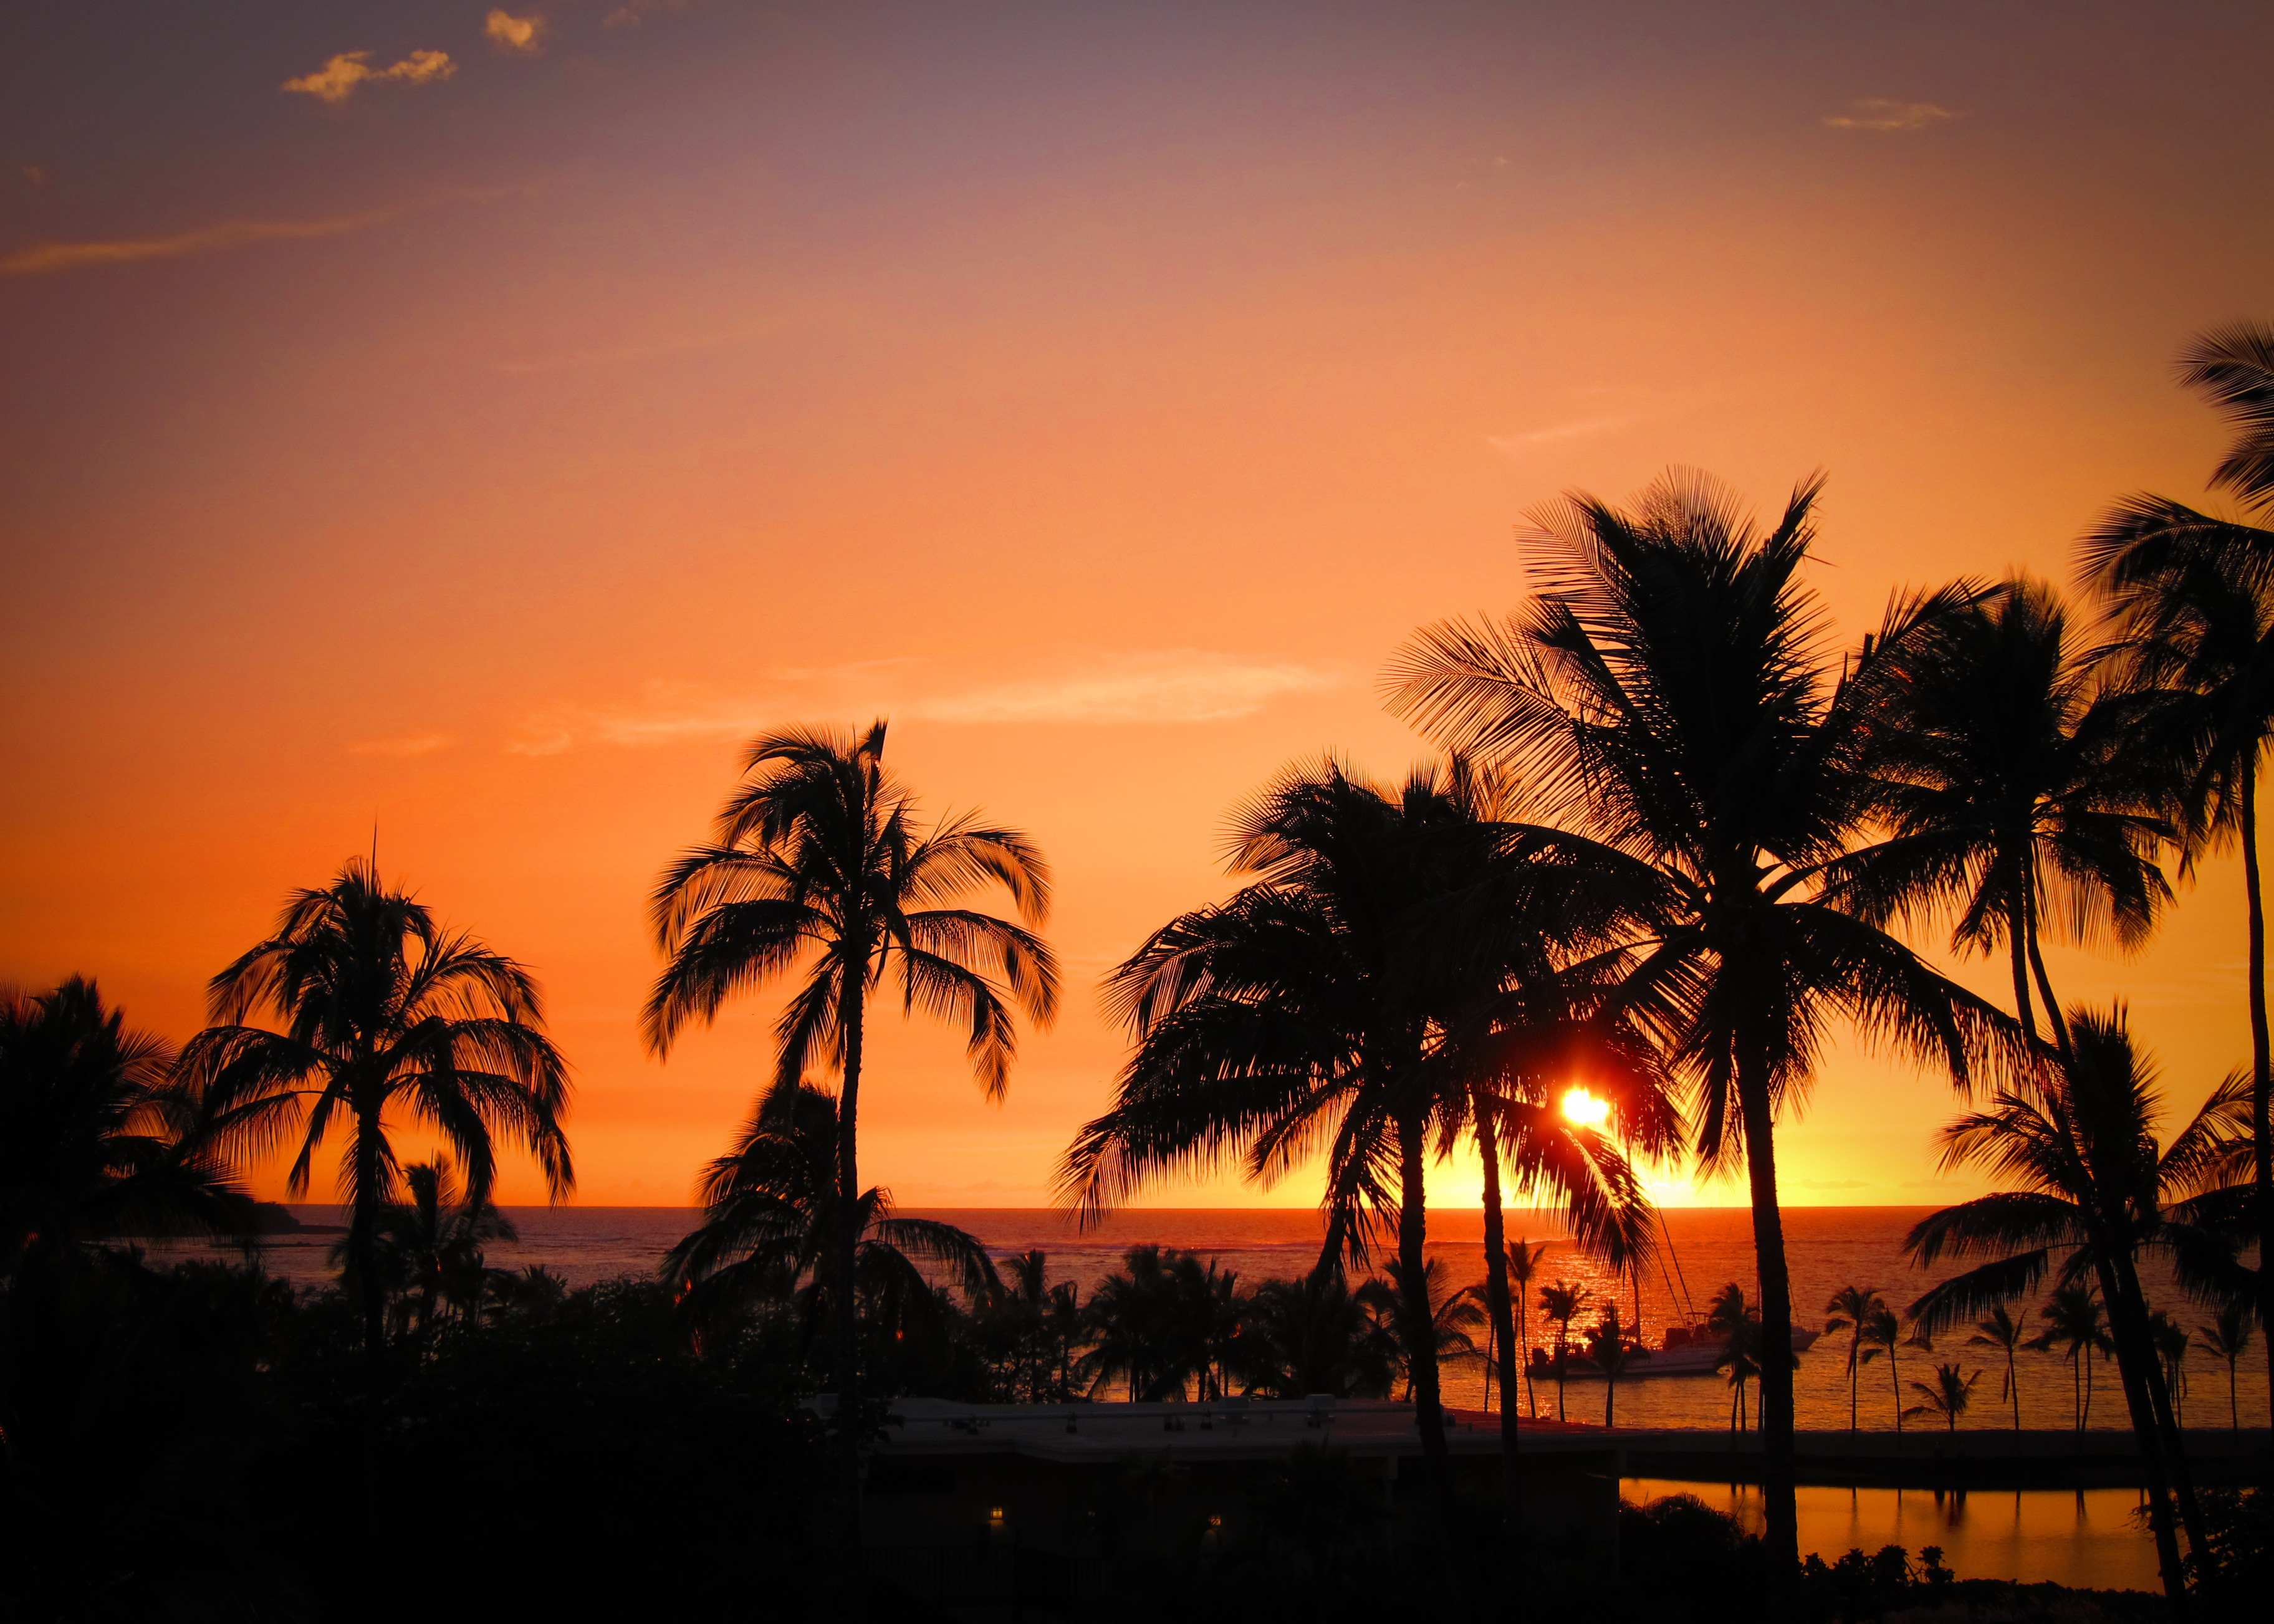 142586 download wallpaper Nature, Sunset, Hawaii, Tropics, Ocean, Horizon, Palms screensavers and pictures for free